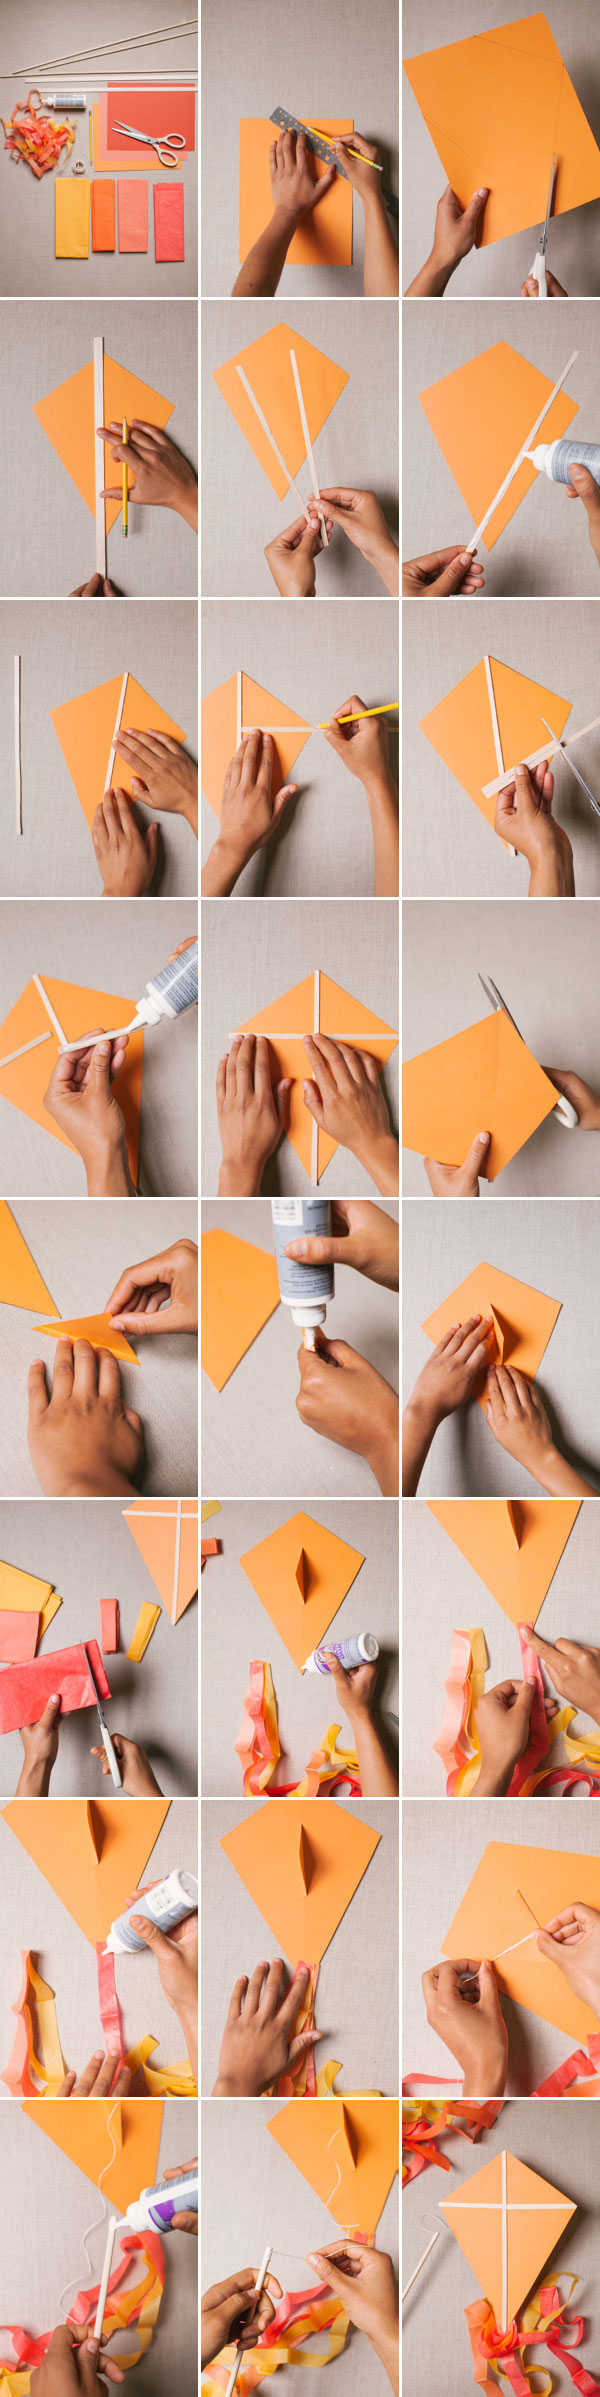 Step by instructions on how to make a paper kite